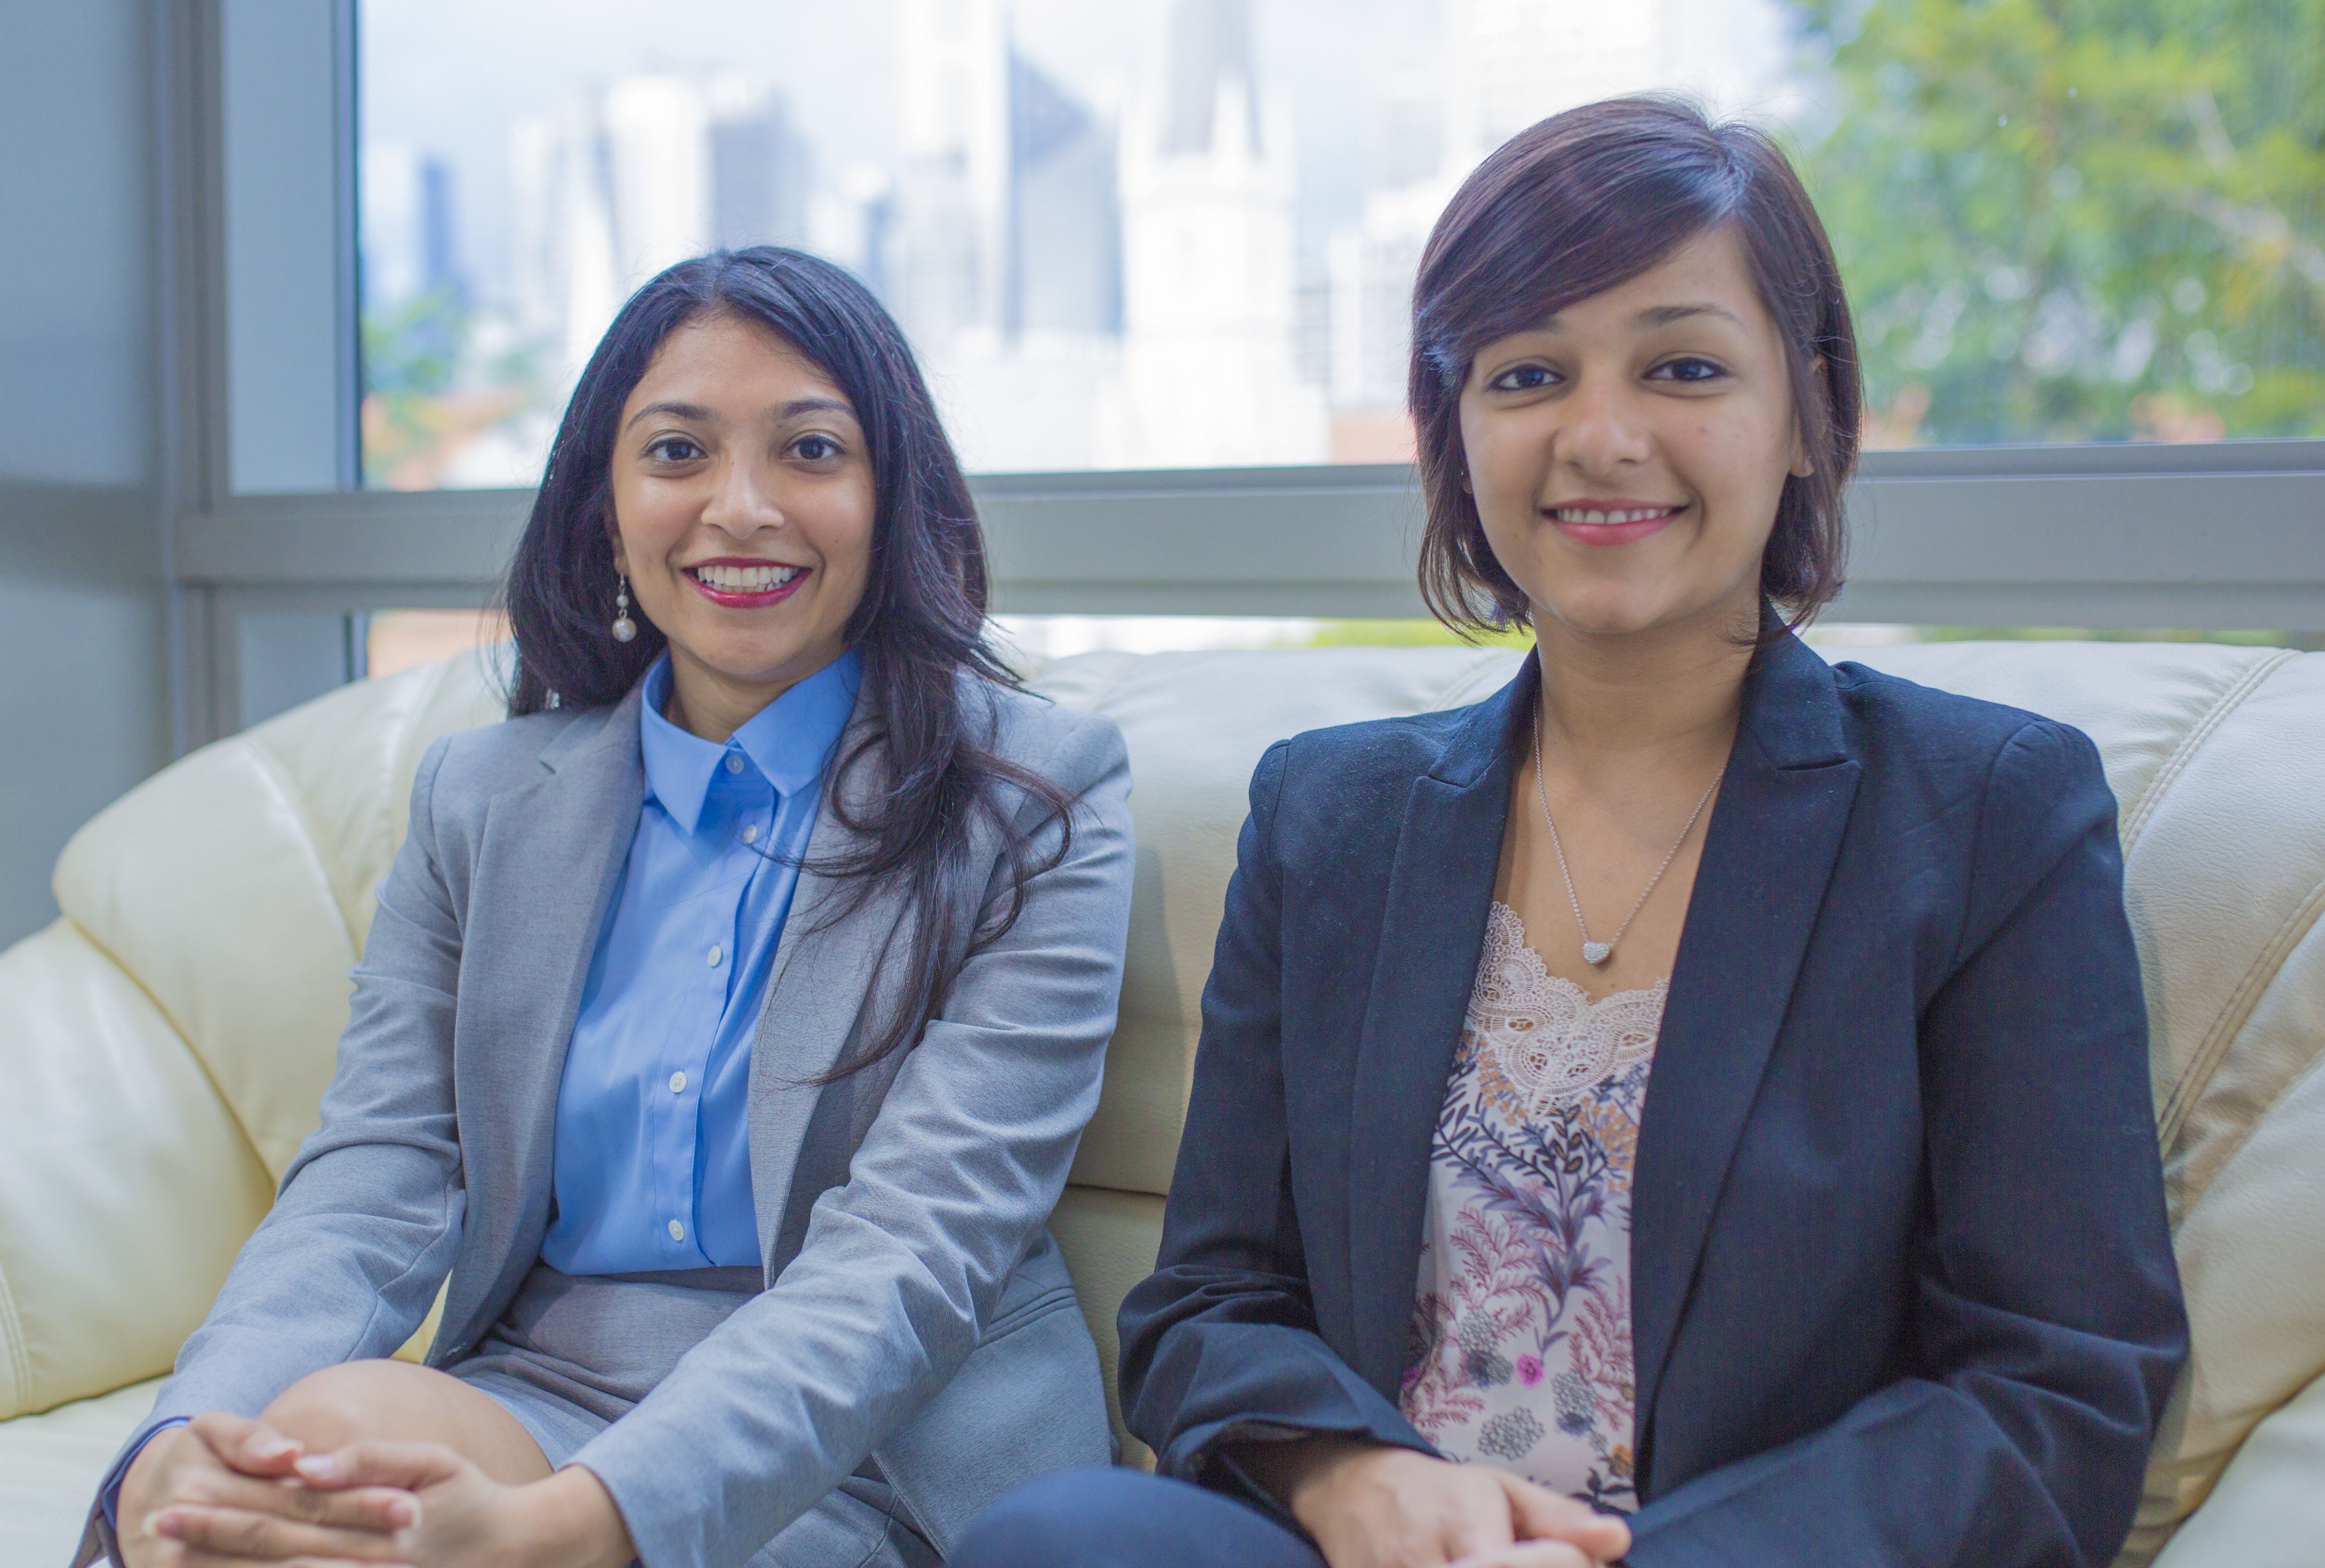 SMU Recipients of the MasterCard MBA Scholarship for Women 2016